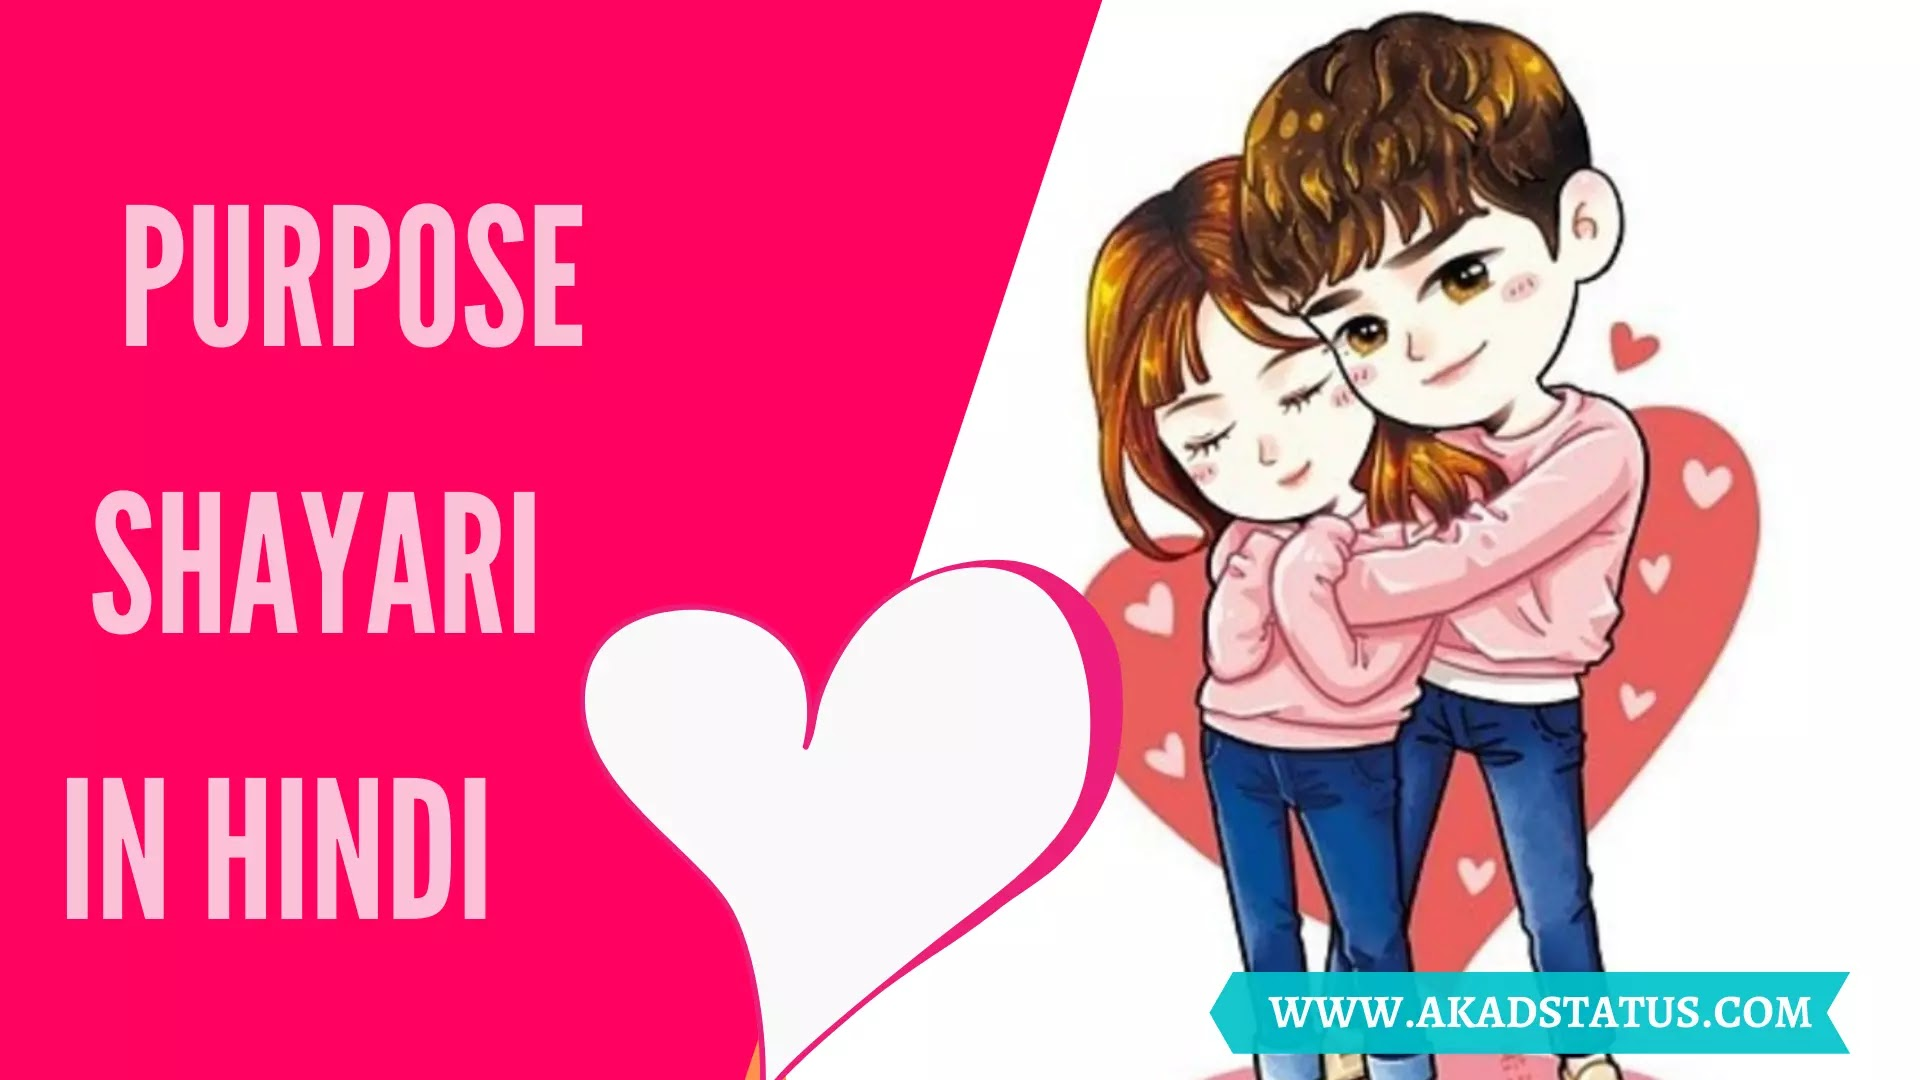 Propose Shayari in Hindi | Propose Day Shayari, Best Propose Shayari in English, 2 line Propose Shayari in Hindi, Ladki Ko Propose Karne Ke Liye Shayari in Hindi, Propose Shayari 2021, Best proposal lines girlfriend in Hindi, Propose Day